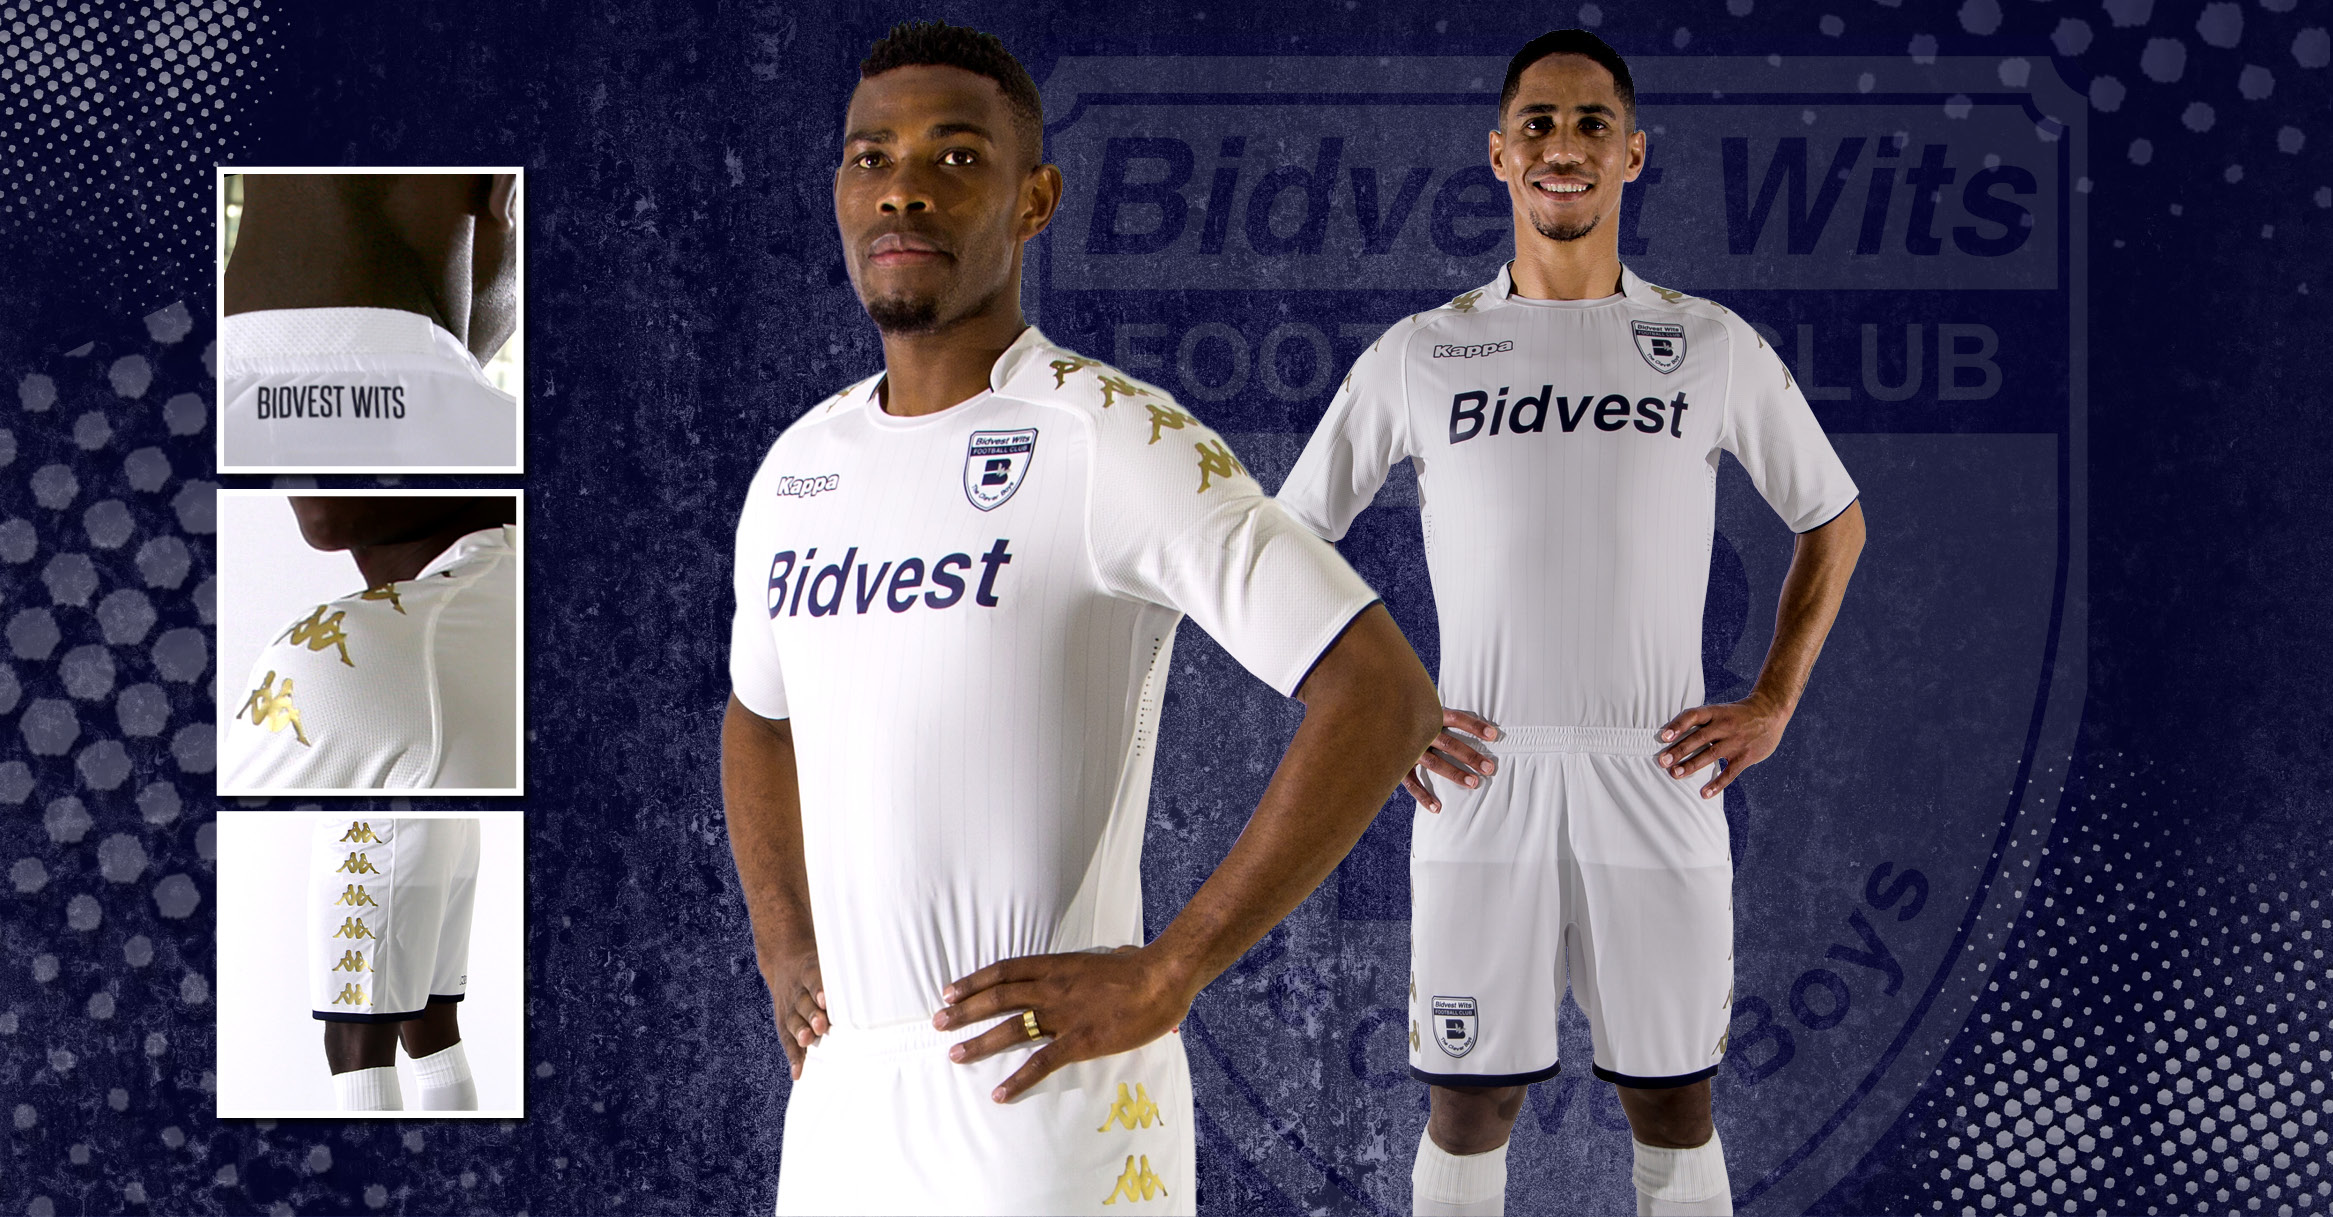 Bidvest Wits 2017-18 away kit